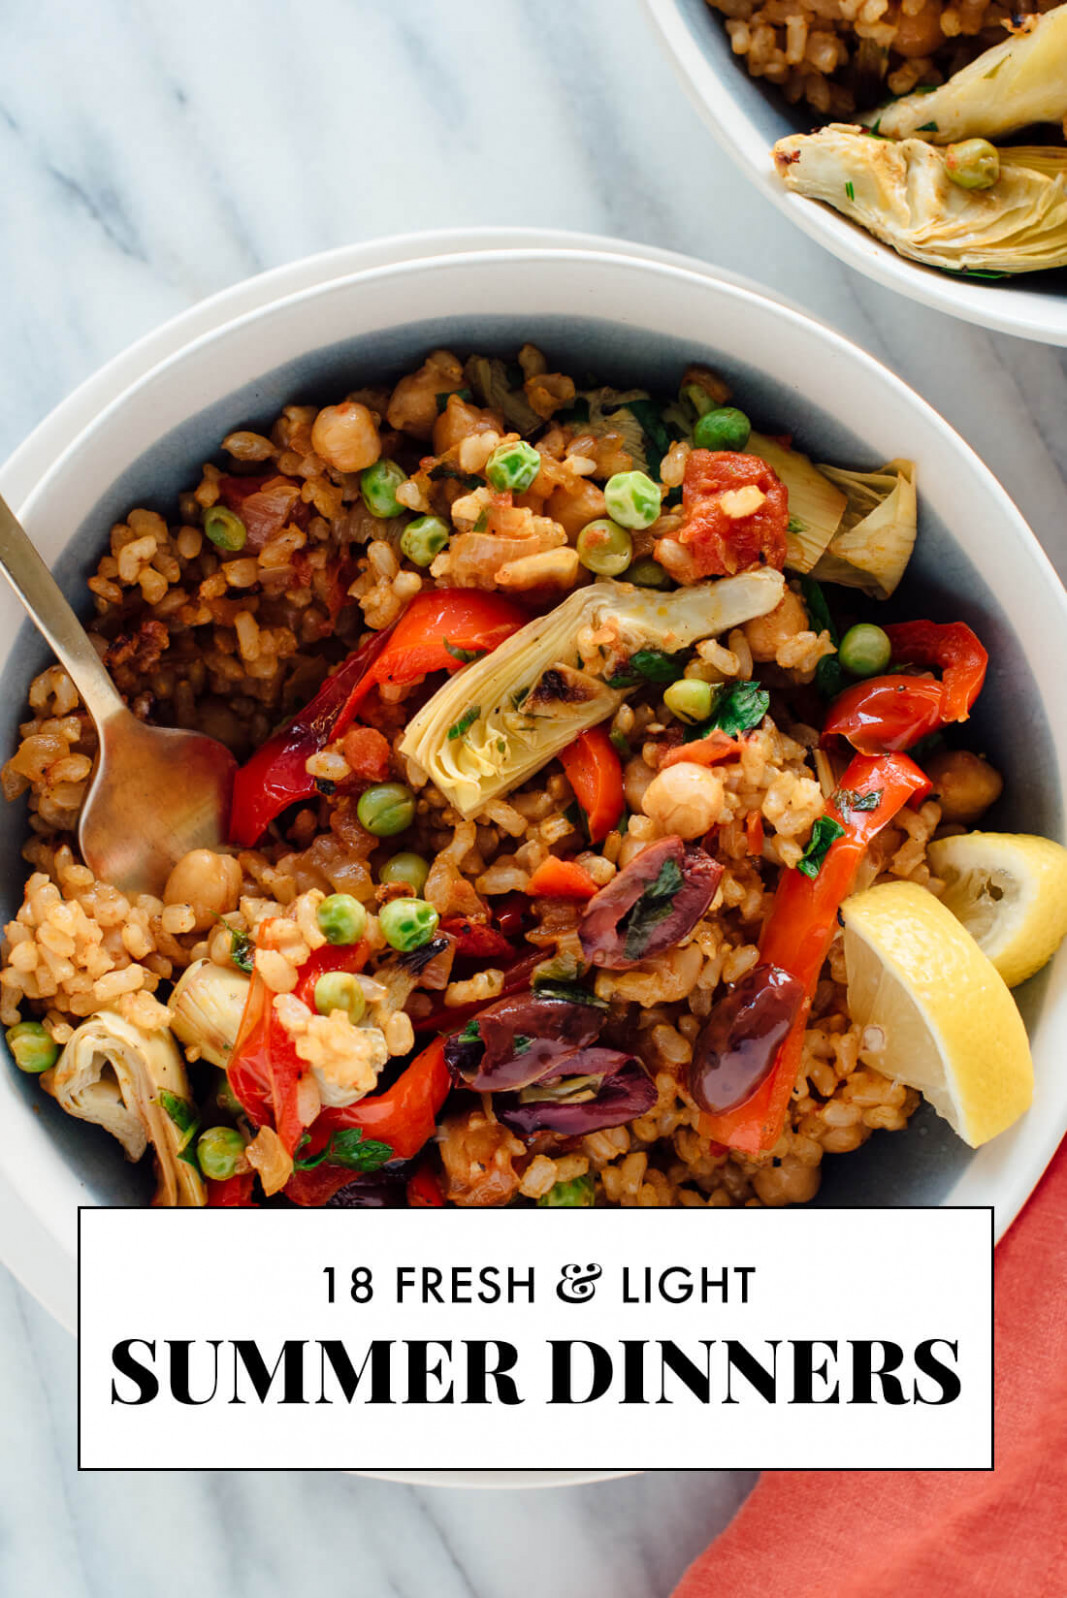 10 Light Summer Dinner Recipes - Cookie and Kate - dinner recipes your husband will love